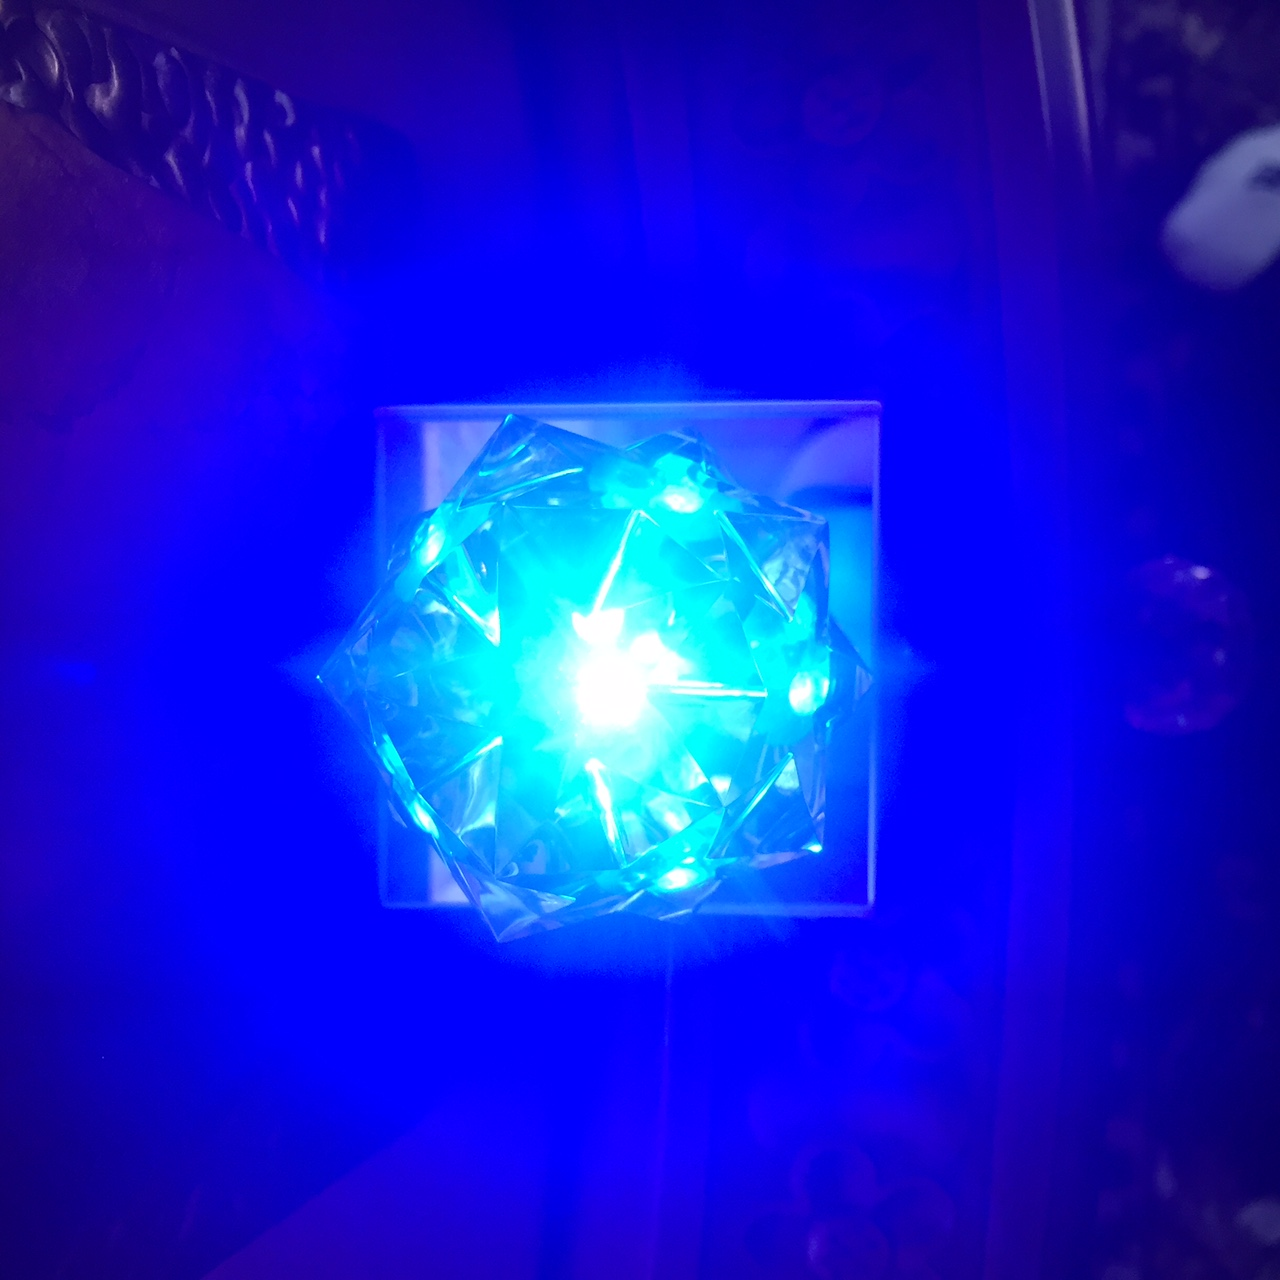 Crystal with blue light